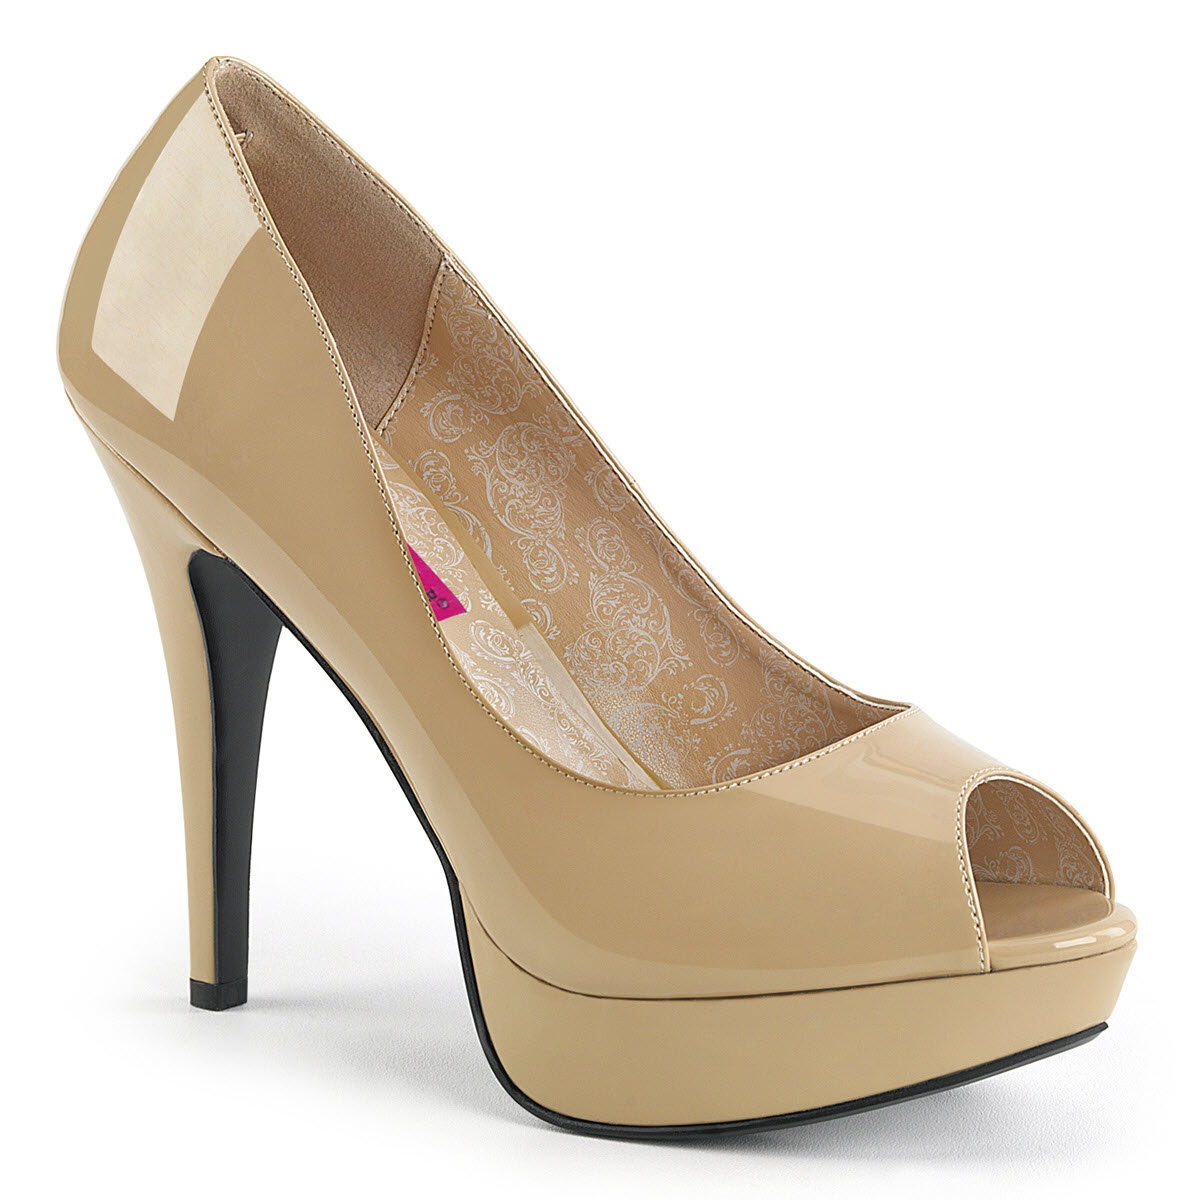 Image of Peep-Toe Pumps, CHLOE-01, Lack, Beige-11